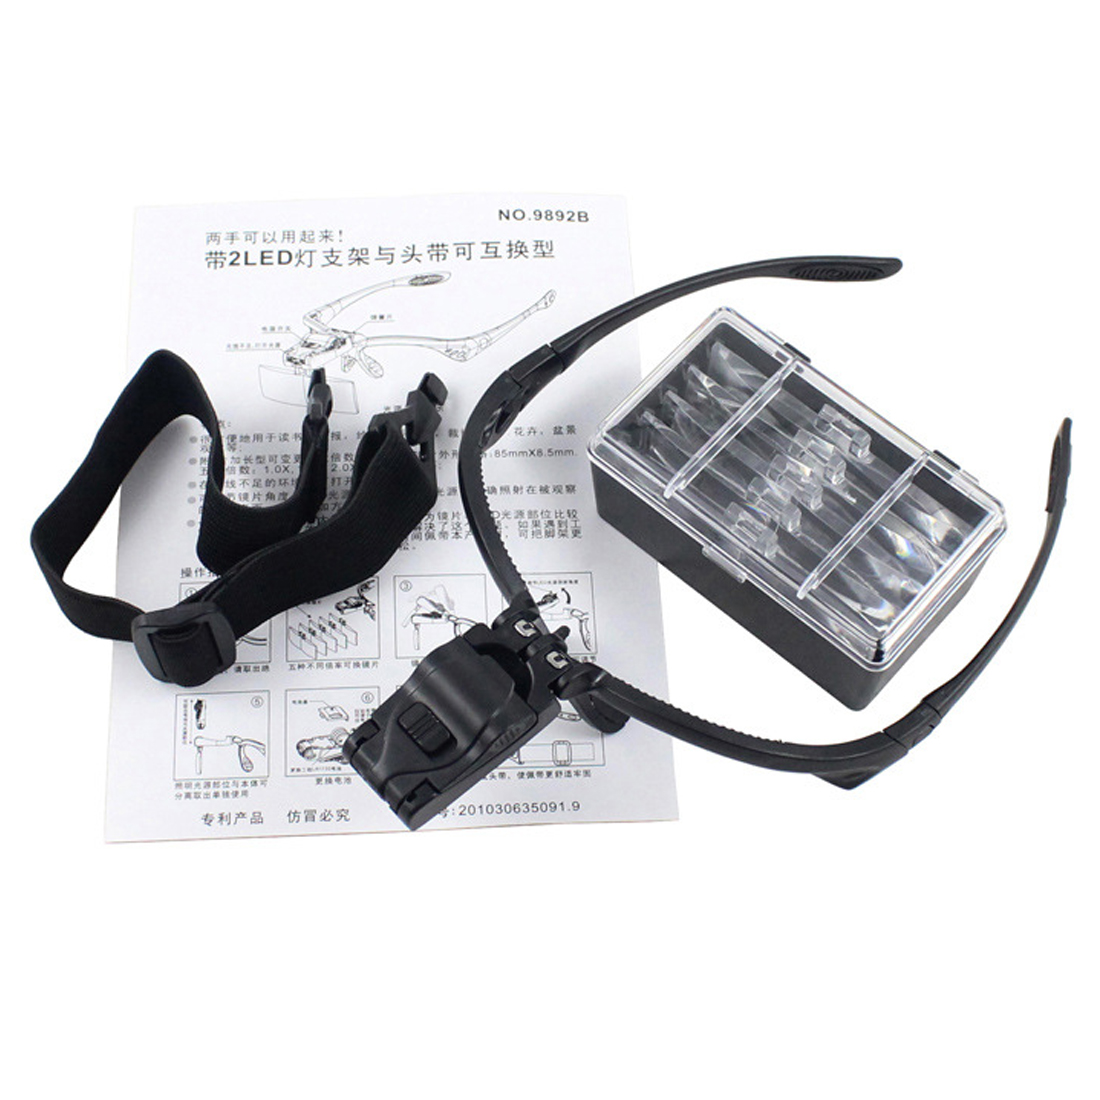 High 1pcs Headband Magnifying Glass Eye Repair Magnifier 2 LED Light 1.0/1.5/2.0/2.5/3.5X 5PC Glasses Loupe Optical Lens